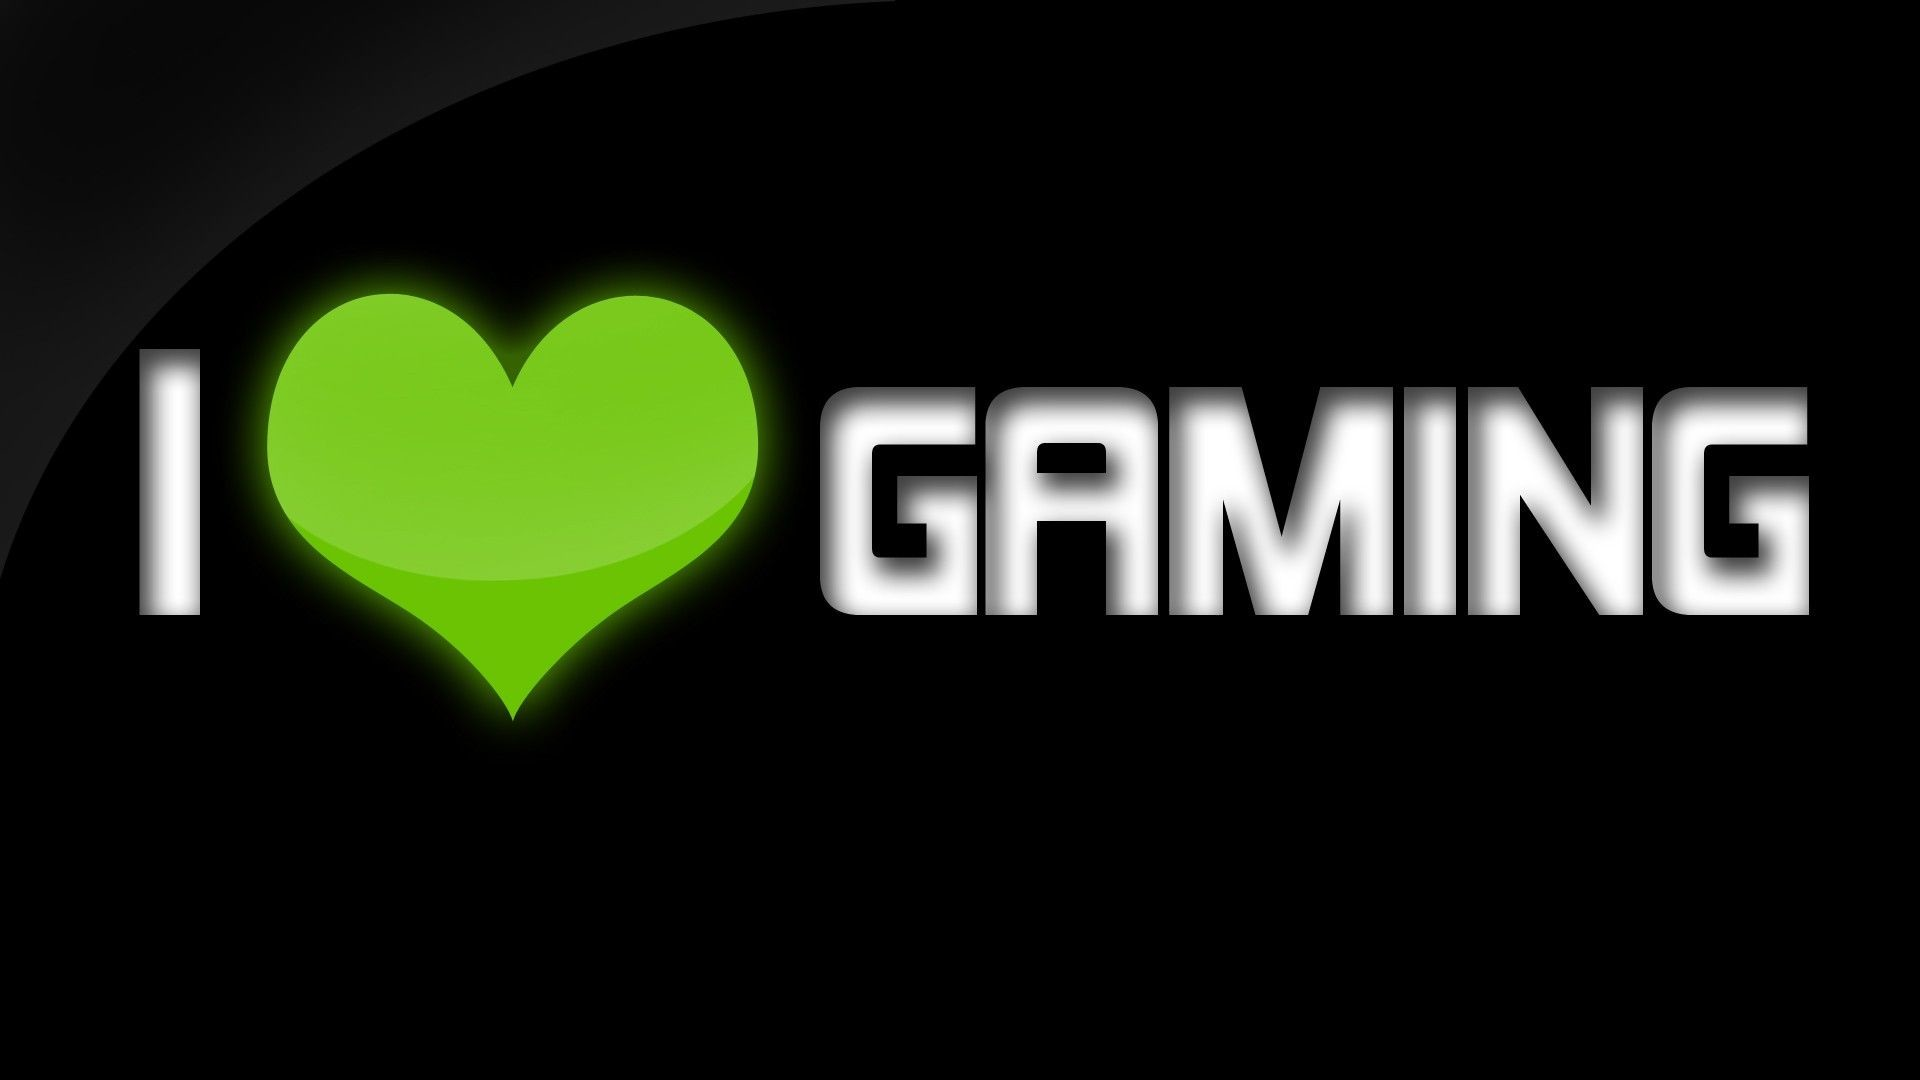 I Love Gaming Wallpapers, I Love Gaming Myspace Backgrounds, I ..